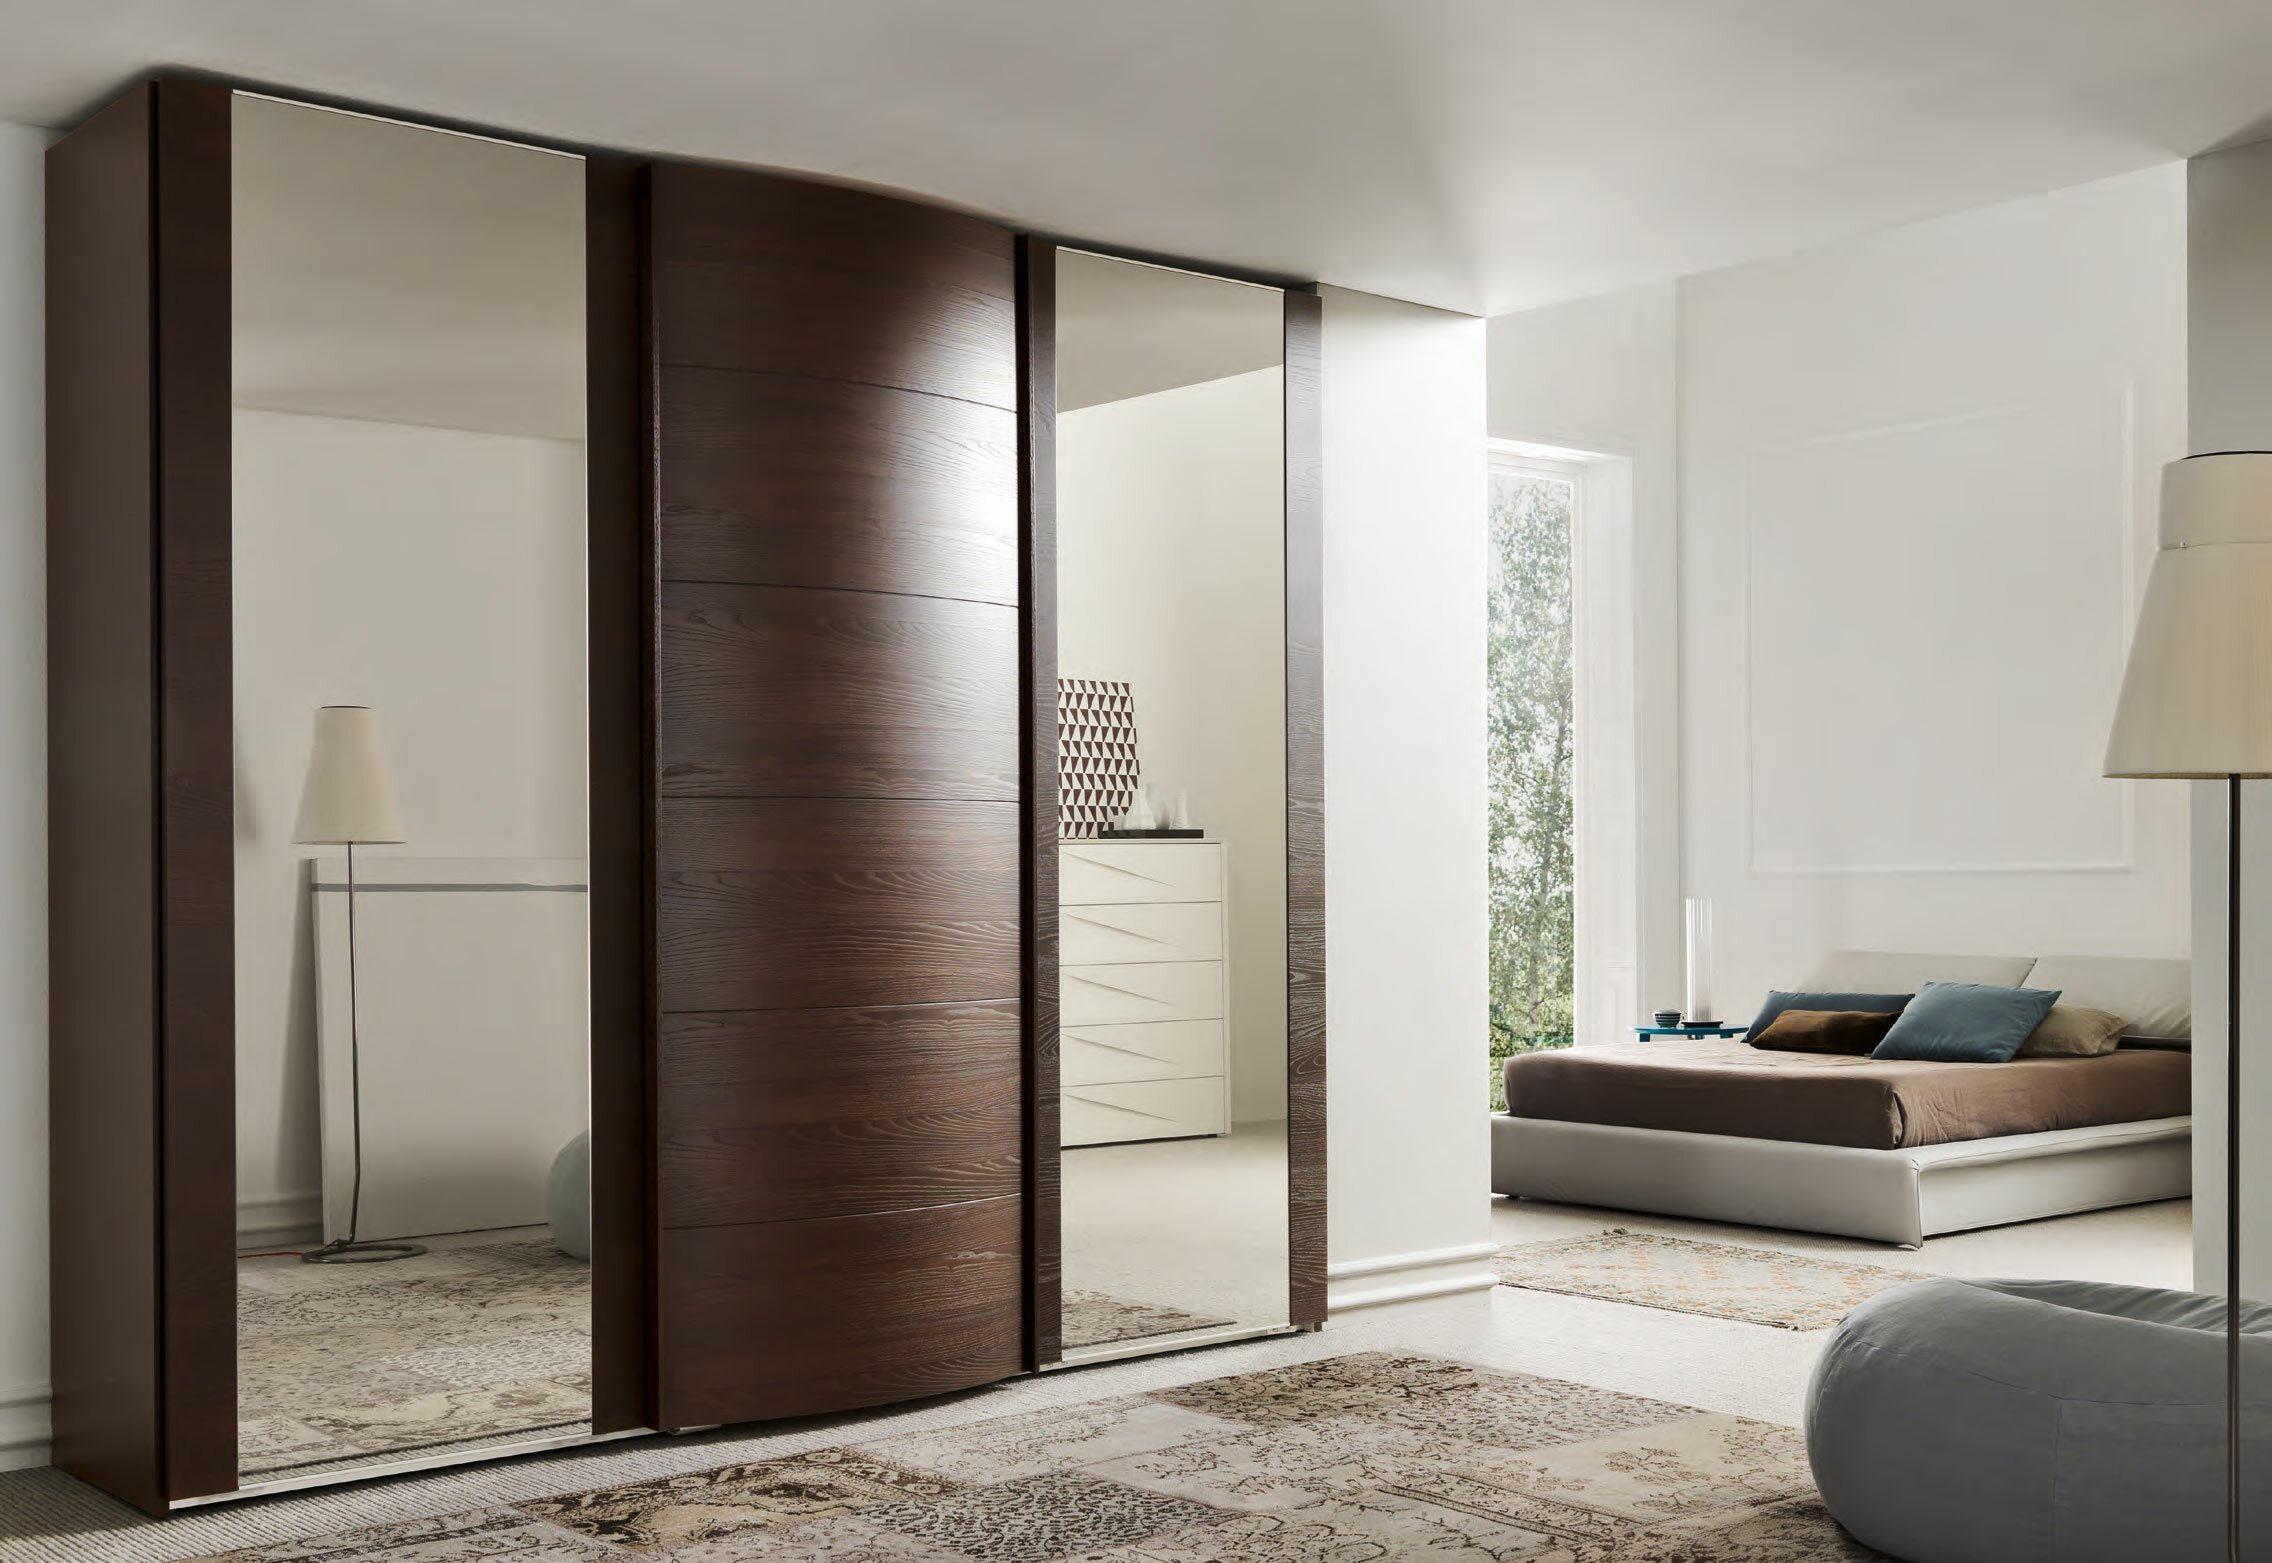 15 inspiring wardrobe models for bedrooms for Modele chambre 2018